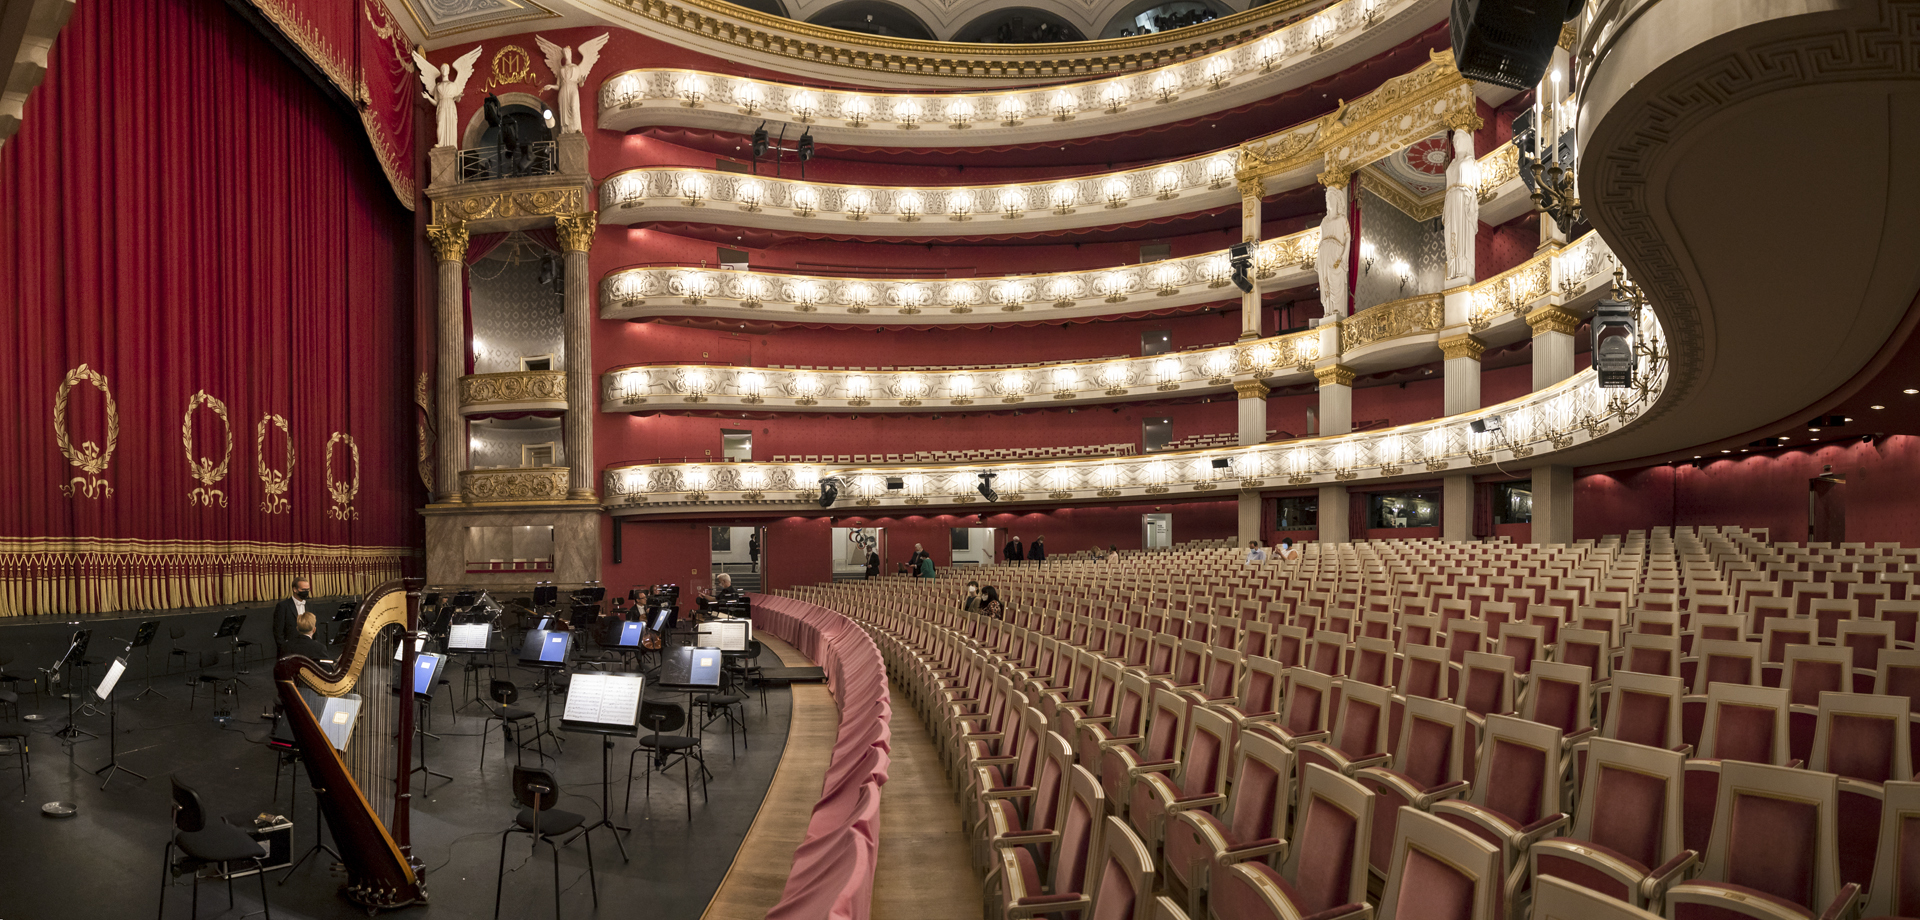 2020_09_19-Giselle-BS-1920-©-Luca-Vantusso-panoramica-1